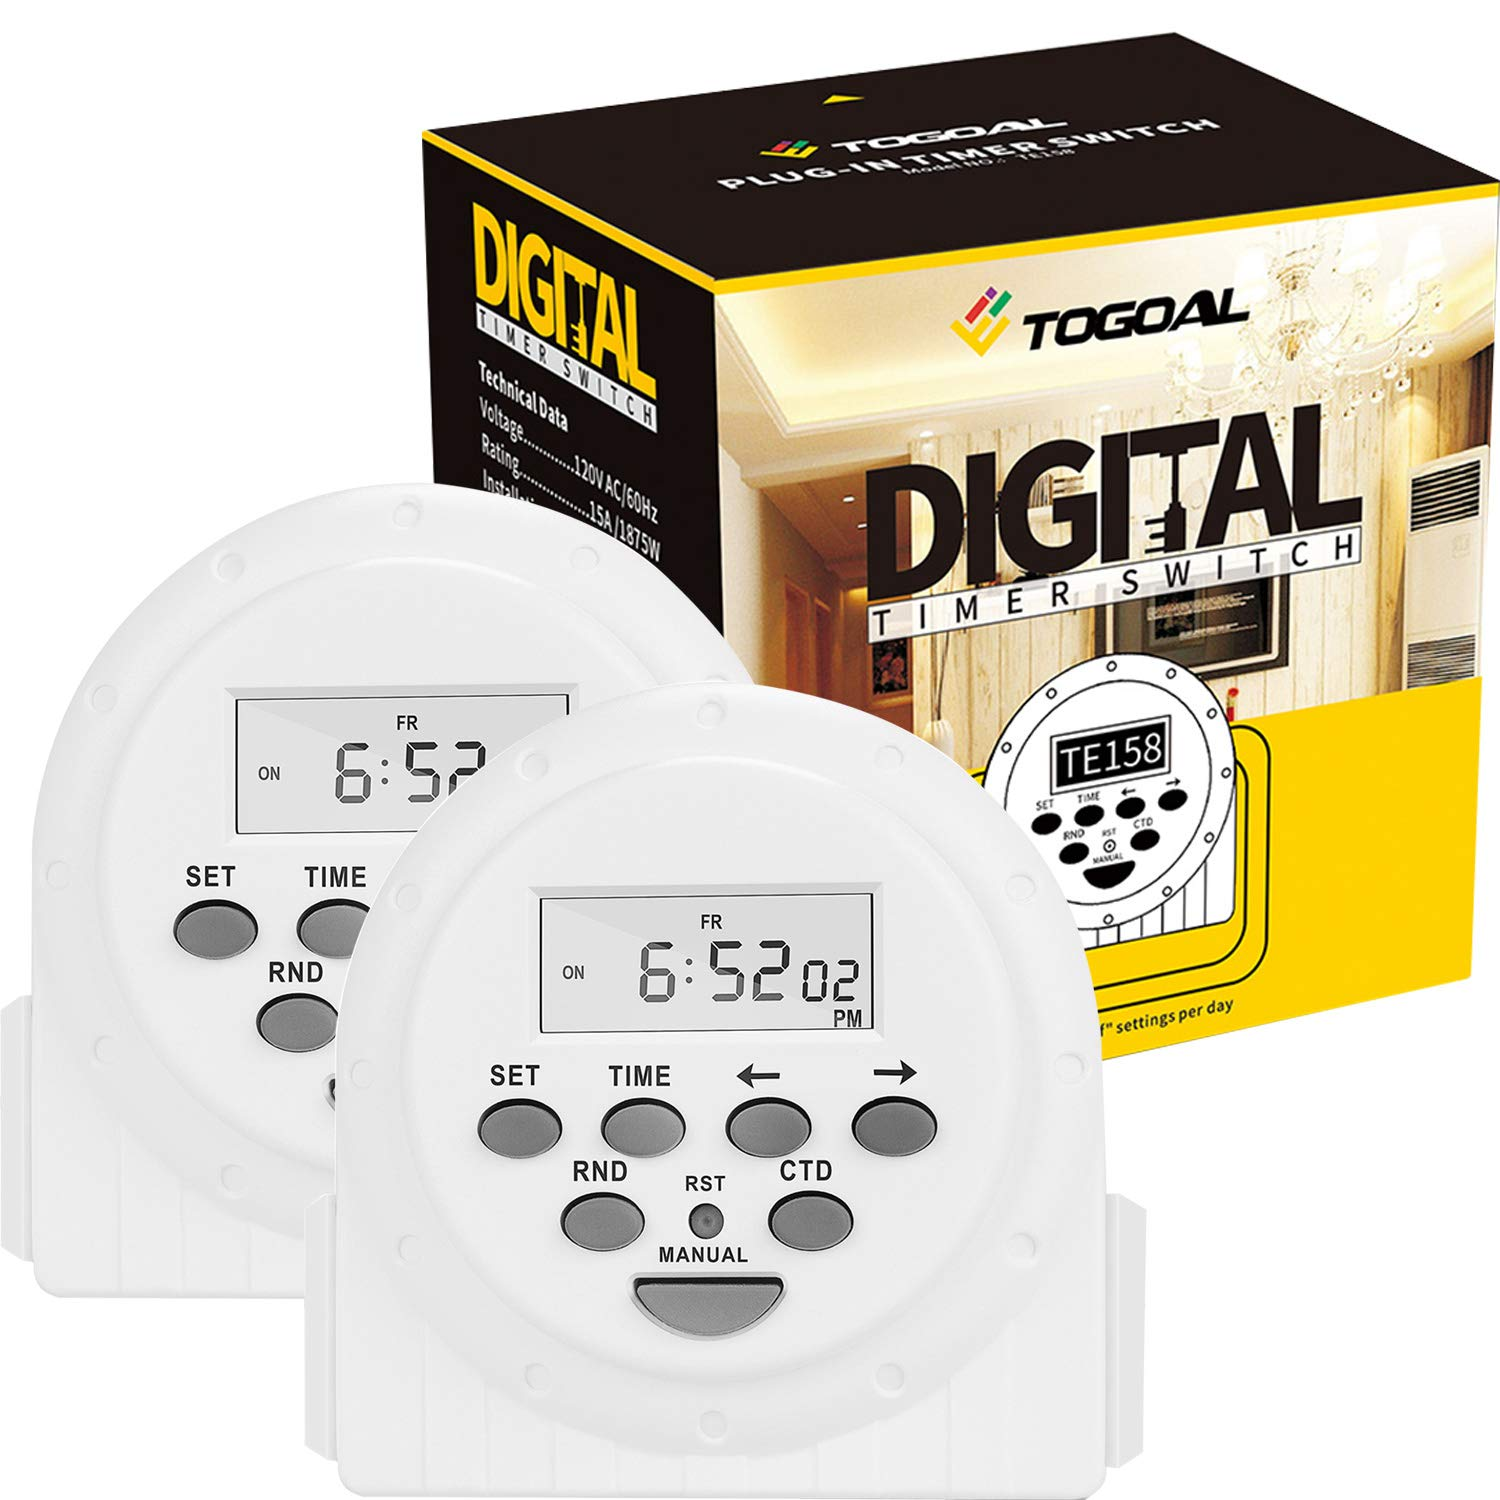 TOGOAL Dual Sided Outlets Digital Light Timer Plug with Countdown and Anti-theft Random Option,7 Day/24 Hour Programmable,2 Pack (15A, 1800W) by TOGOAL